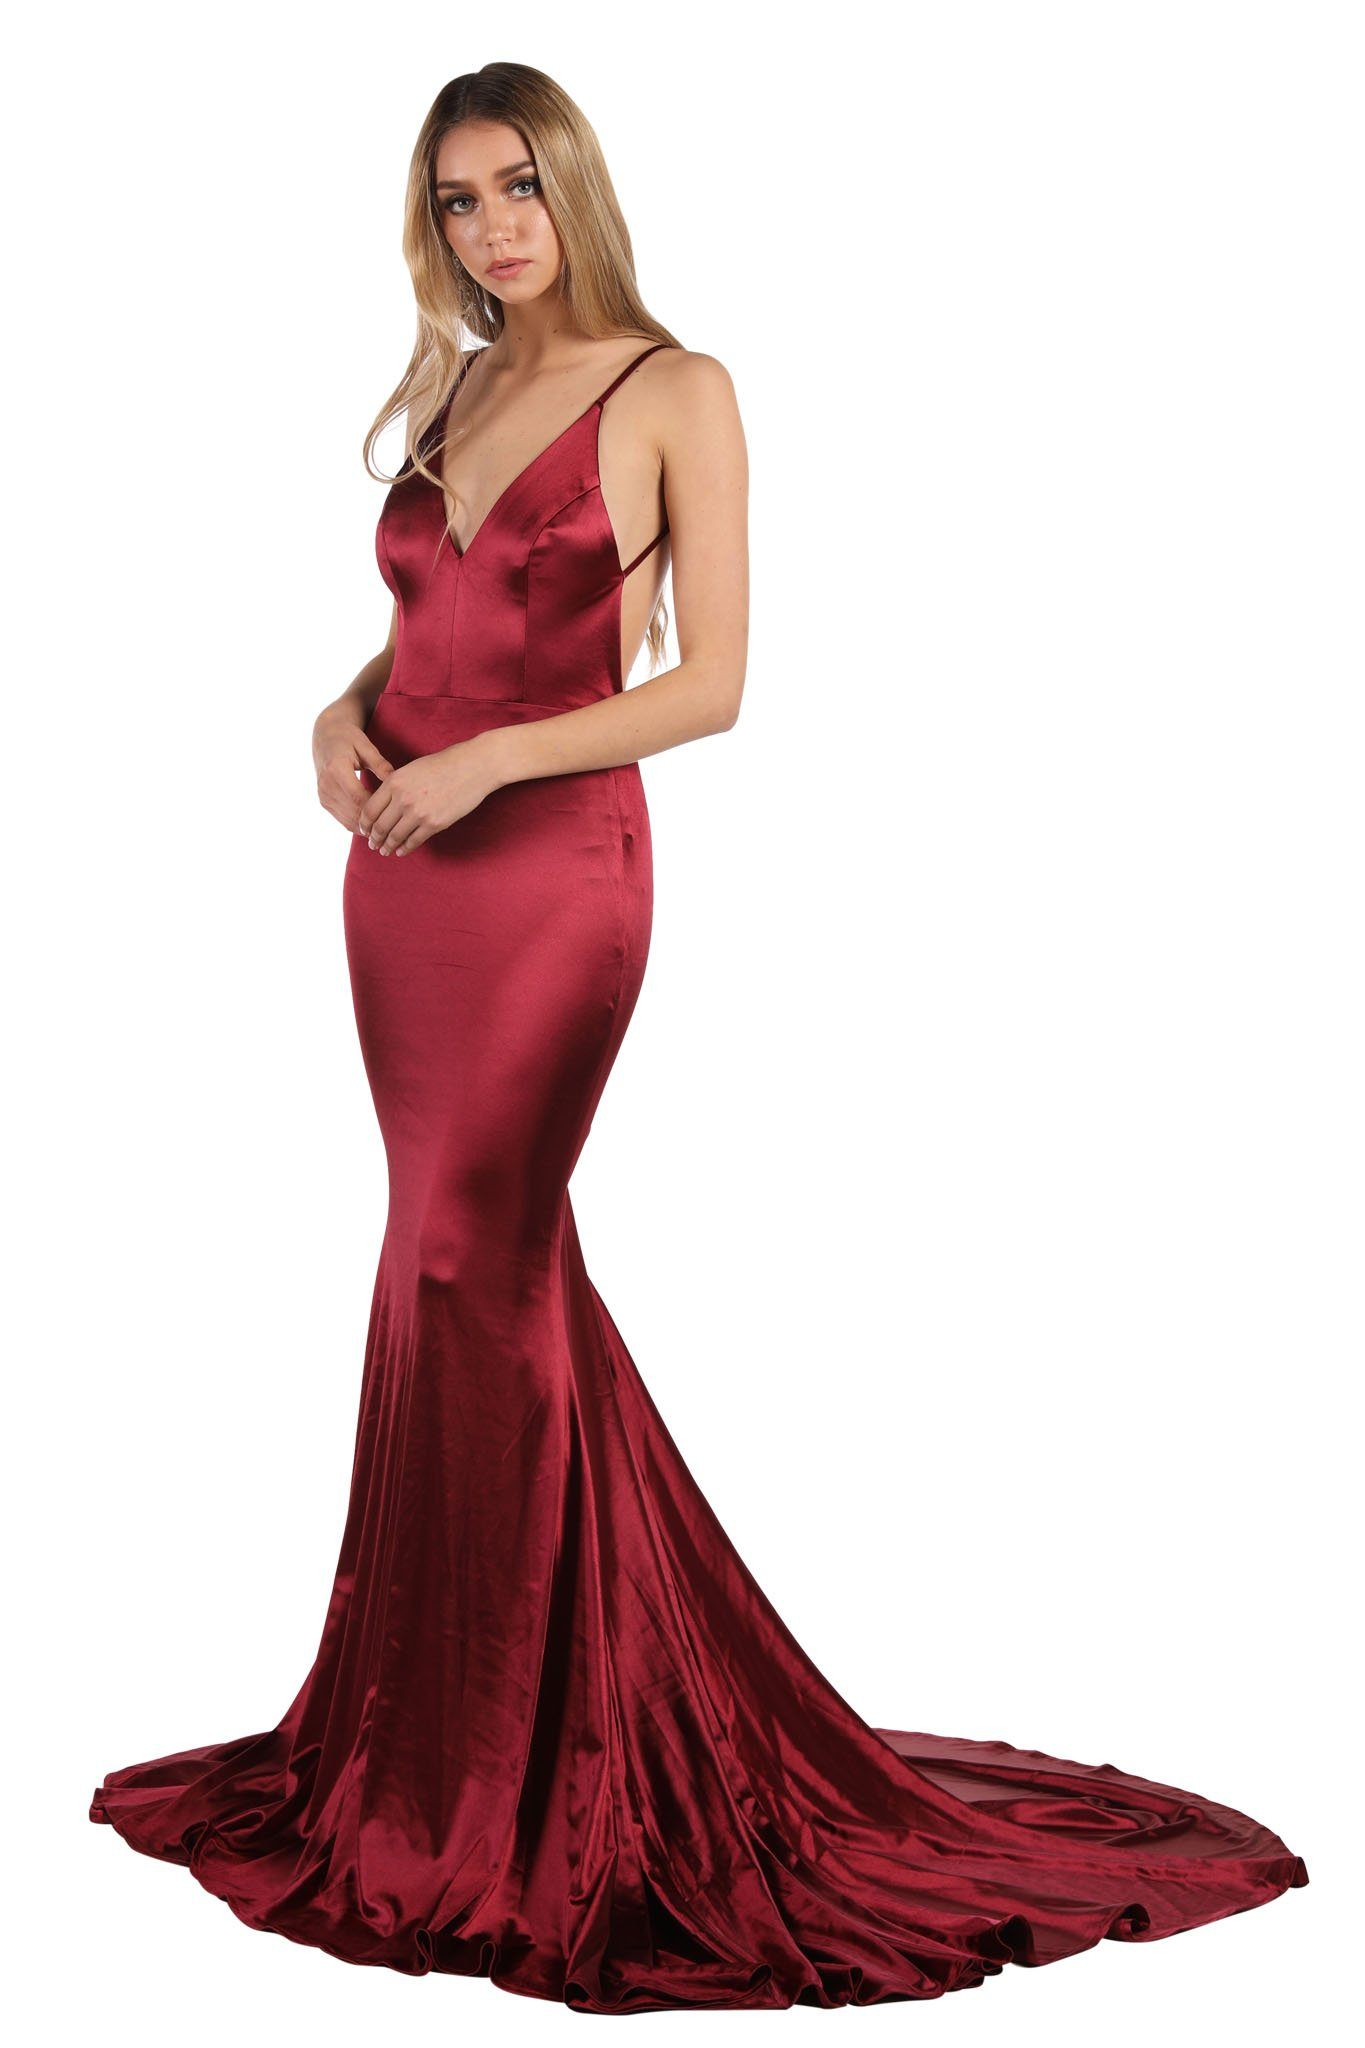 Burgundy Stretchy Satin Gown with Deep V Neck, Ruched V Open Back and Mermaid Train